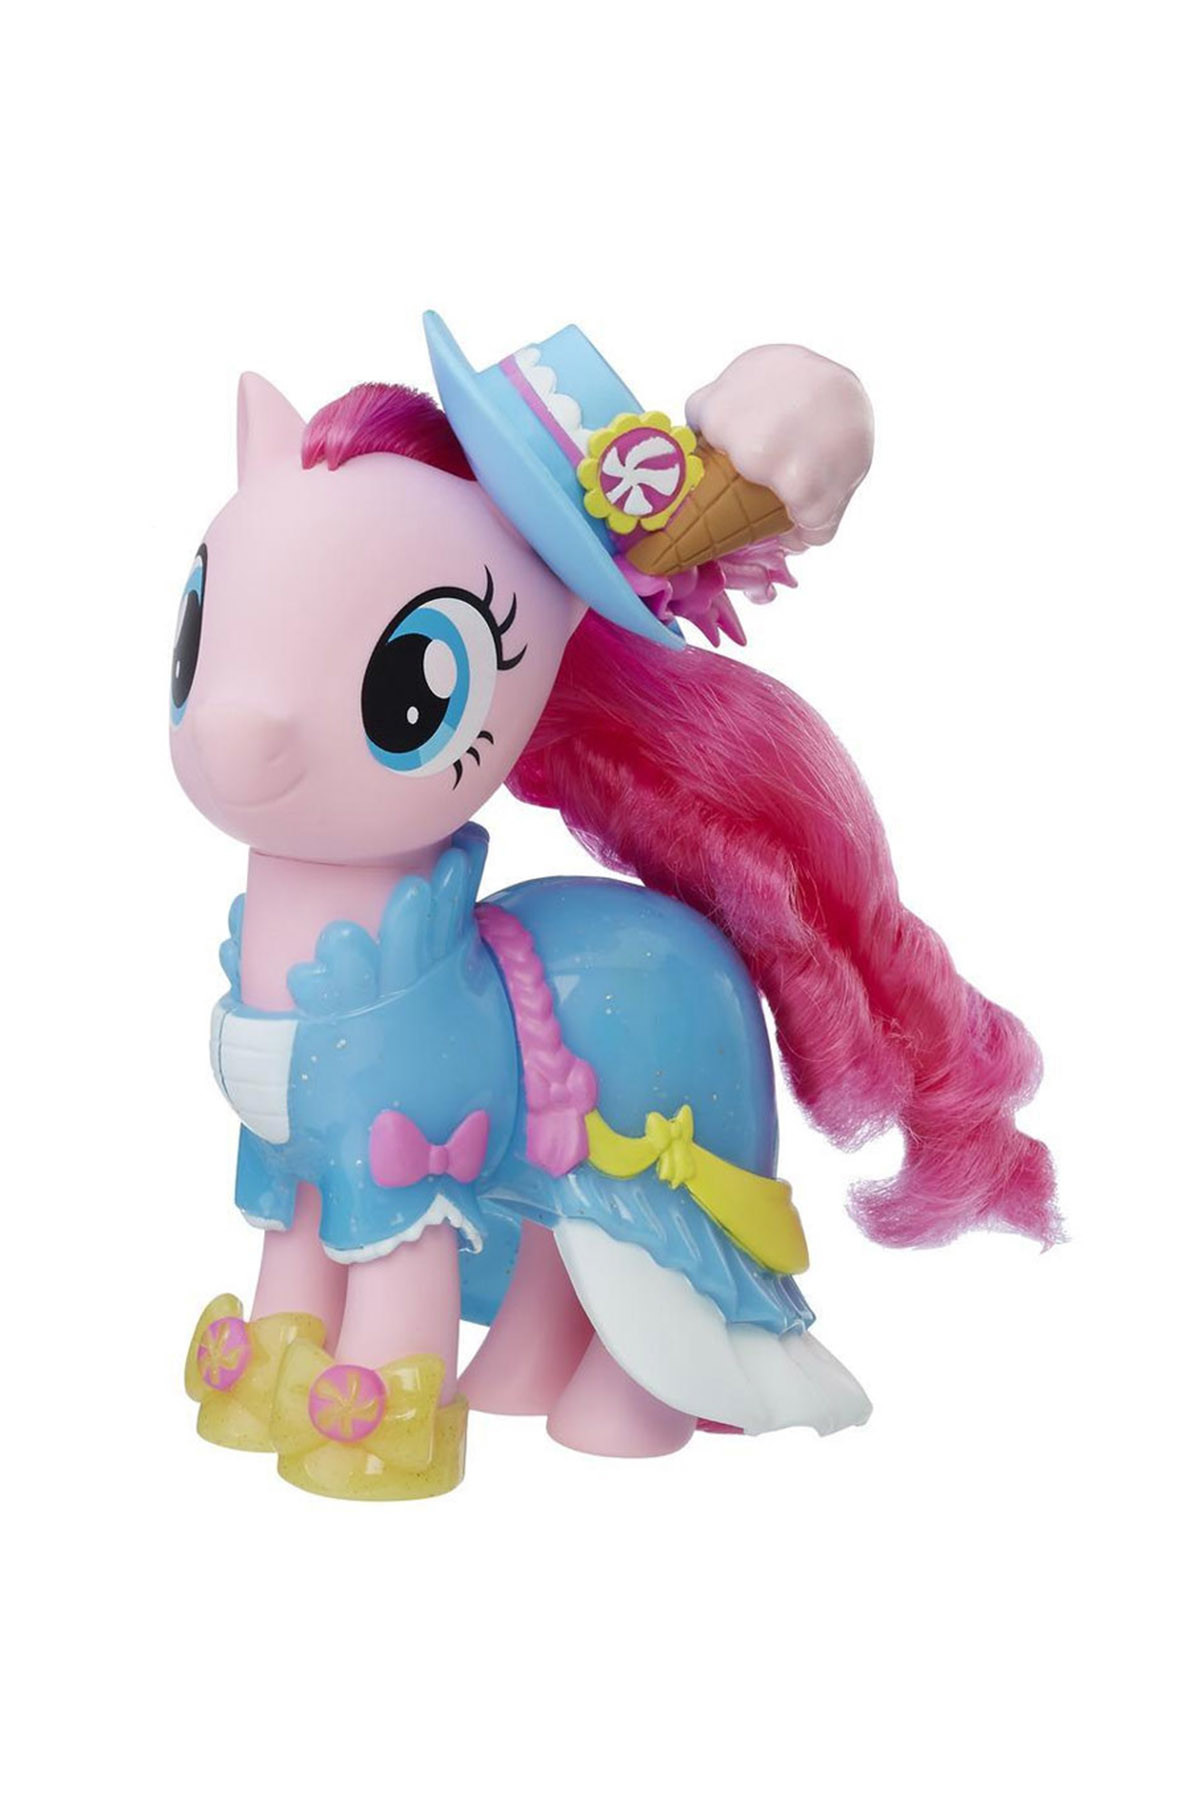 My little pony my little pony ssl ponyler c0721 e1001 u285375 fiyat alarm mightylinksfo